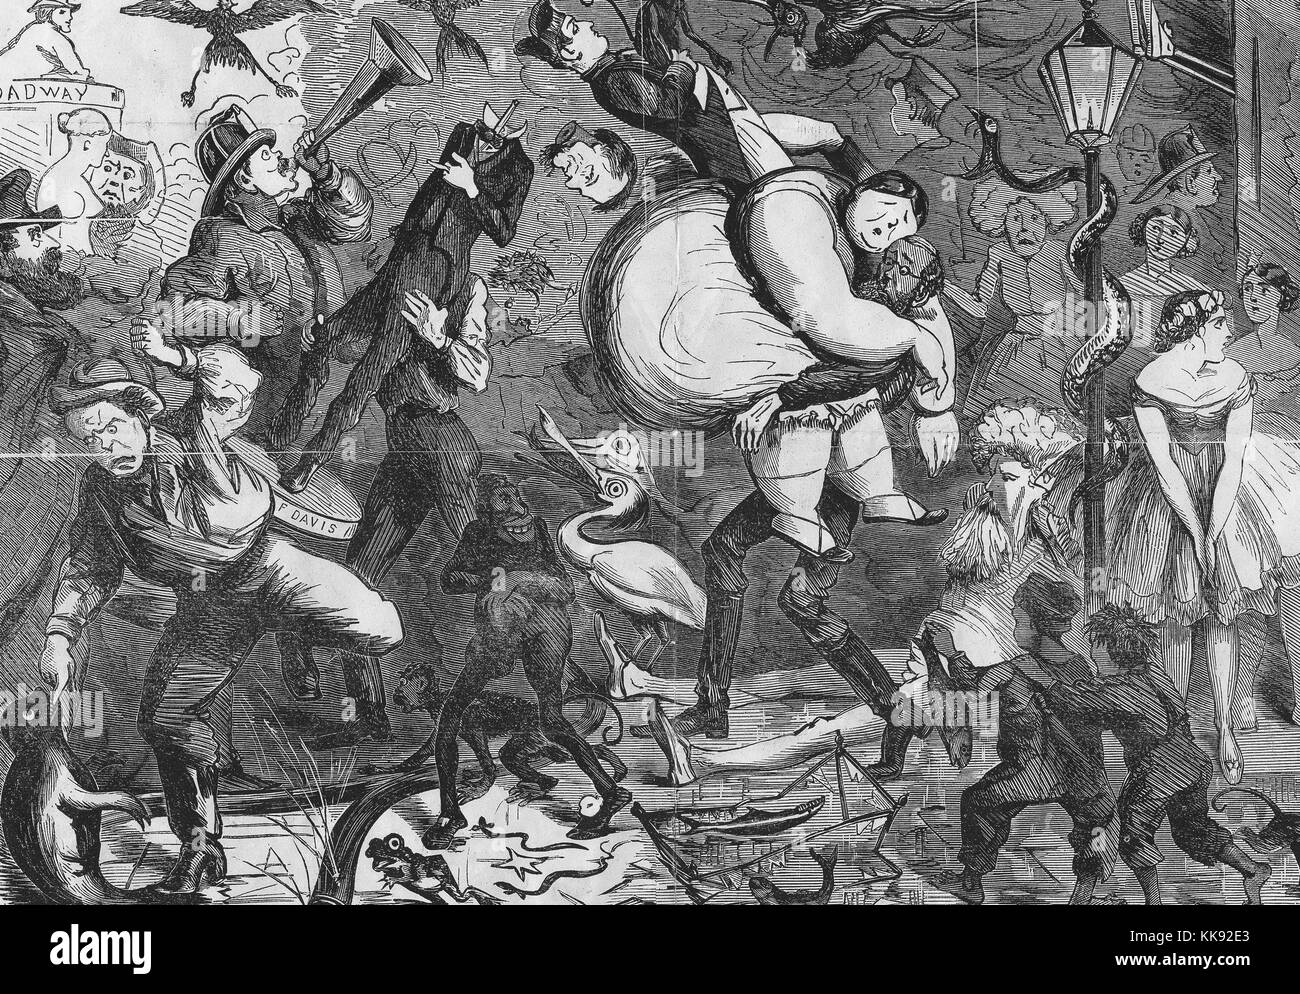 Illustration depicting a number of curiosities from the Barnum Museum fleeing out of the building during the fire - Stock Image